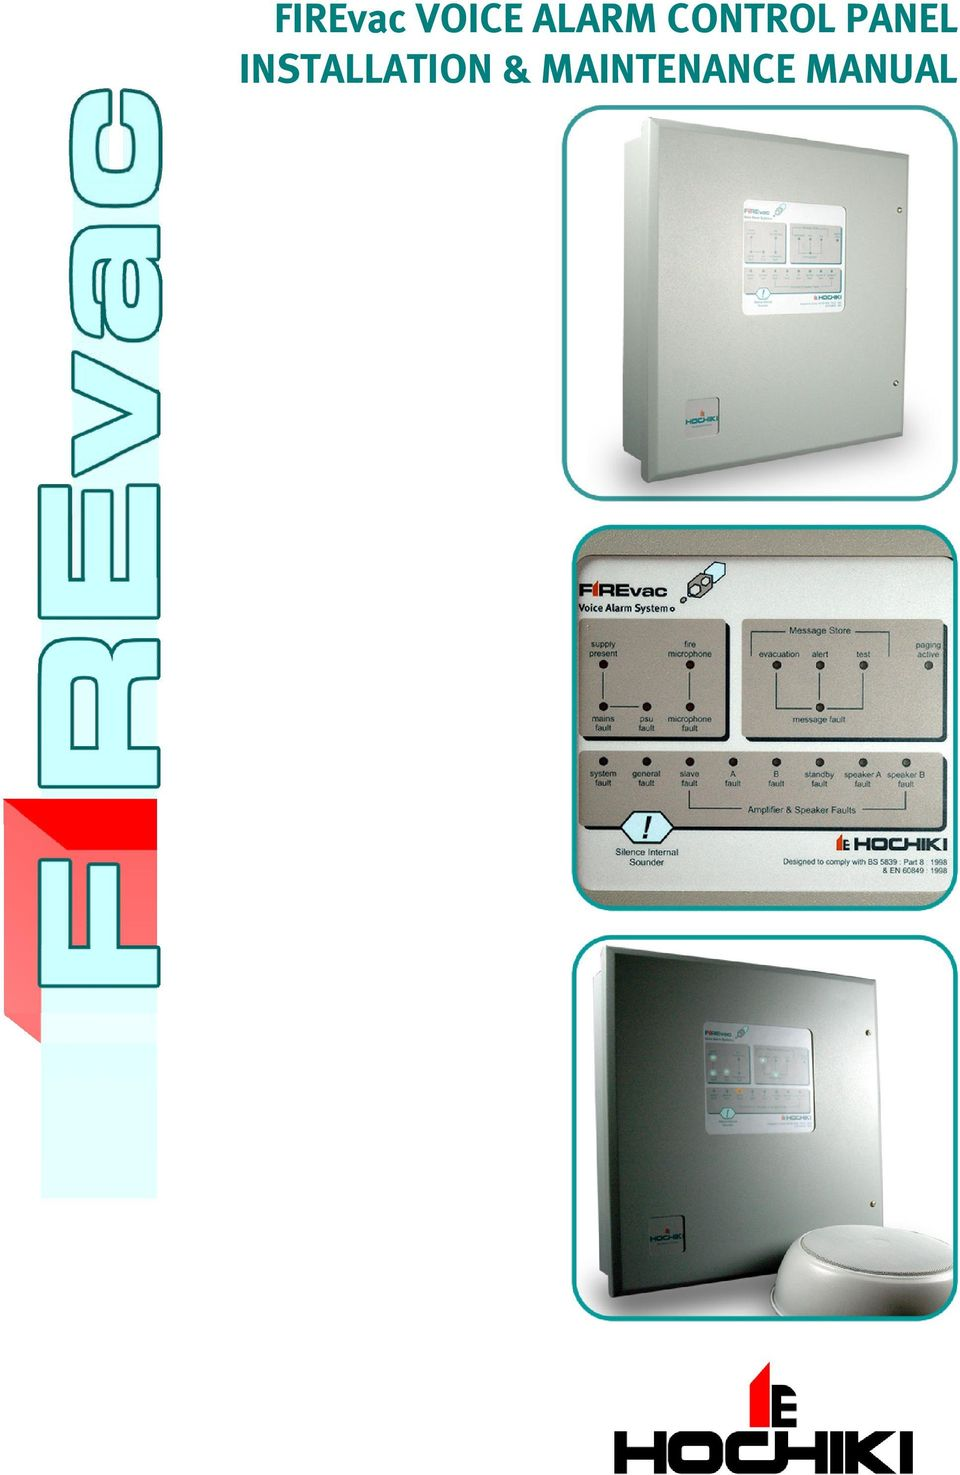 2 Page 2 of 41 FIREvac Voice Alarm Control Panel Installation & Maintenance  Manual This manual details the operation of: FIREvac Voice Alarm Control  Panel ...